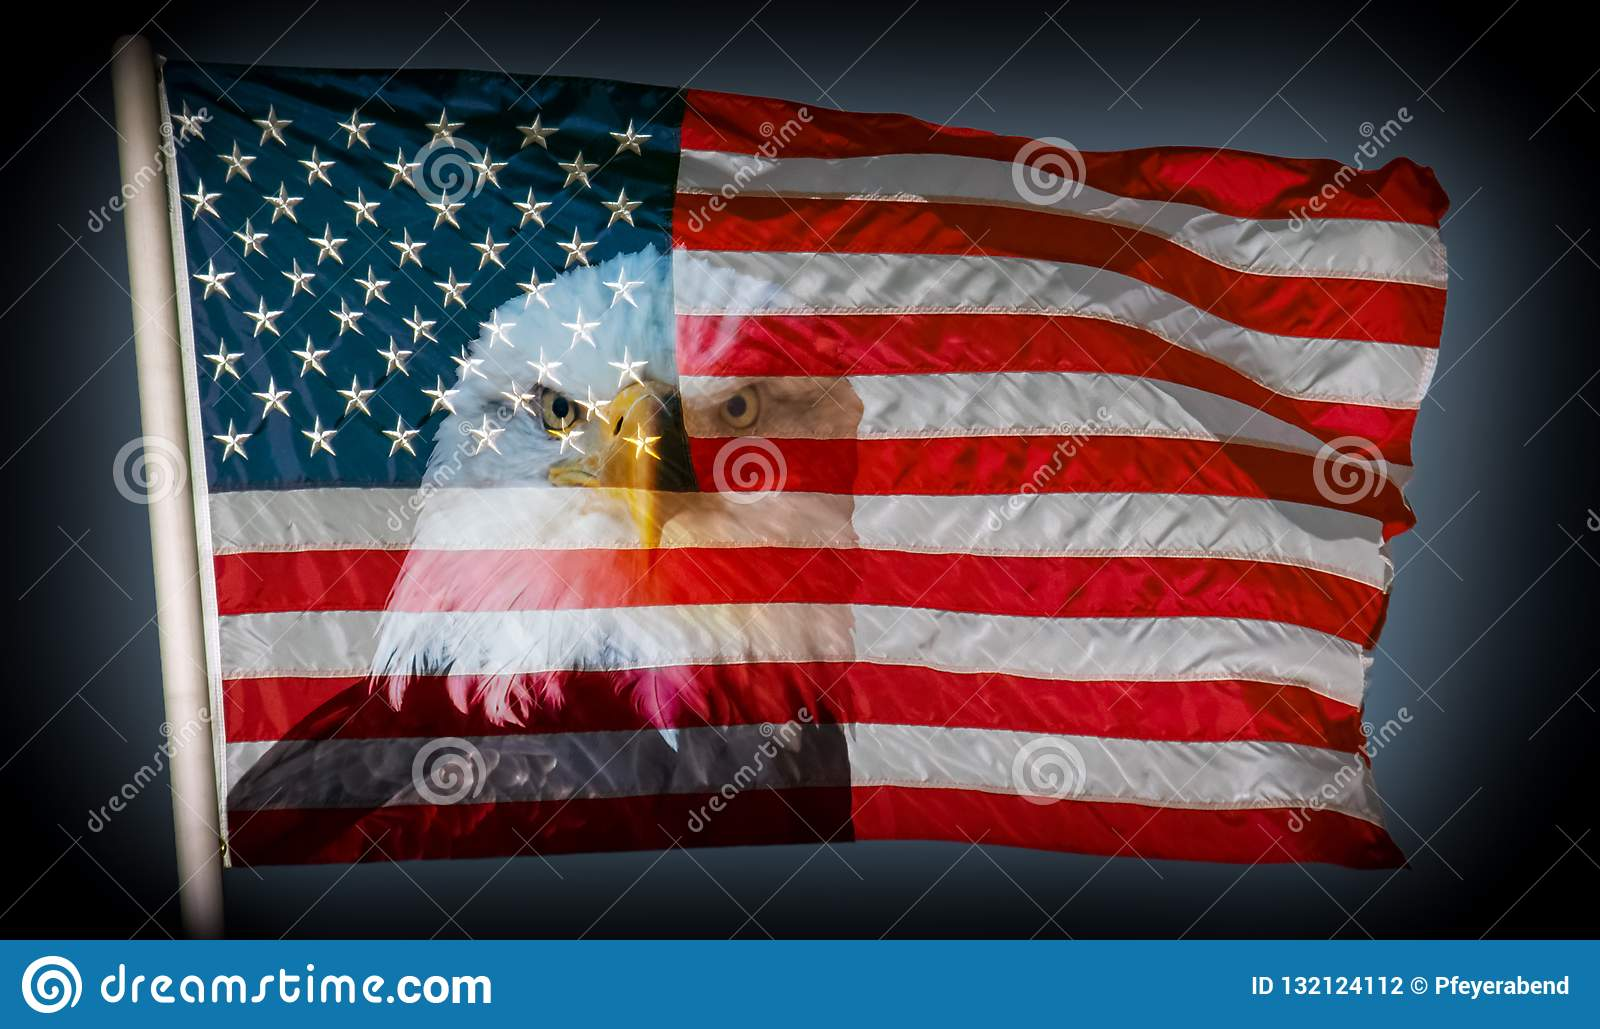 Always vigilant american flag and bald eagle dark background